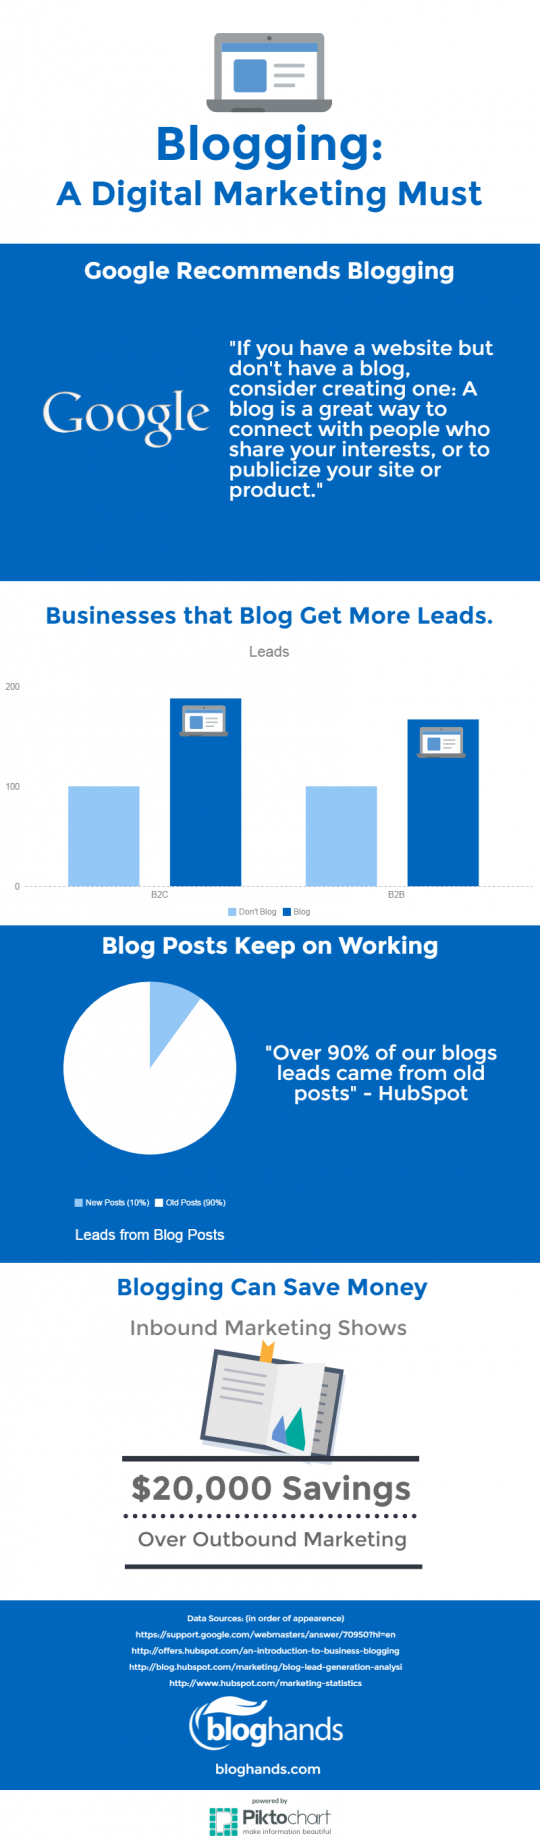 Why Blogging is a Digital Marketing Must [Infographic]